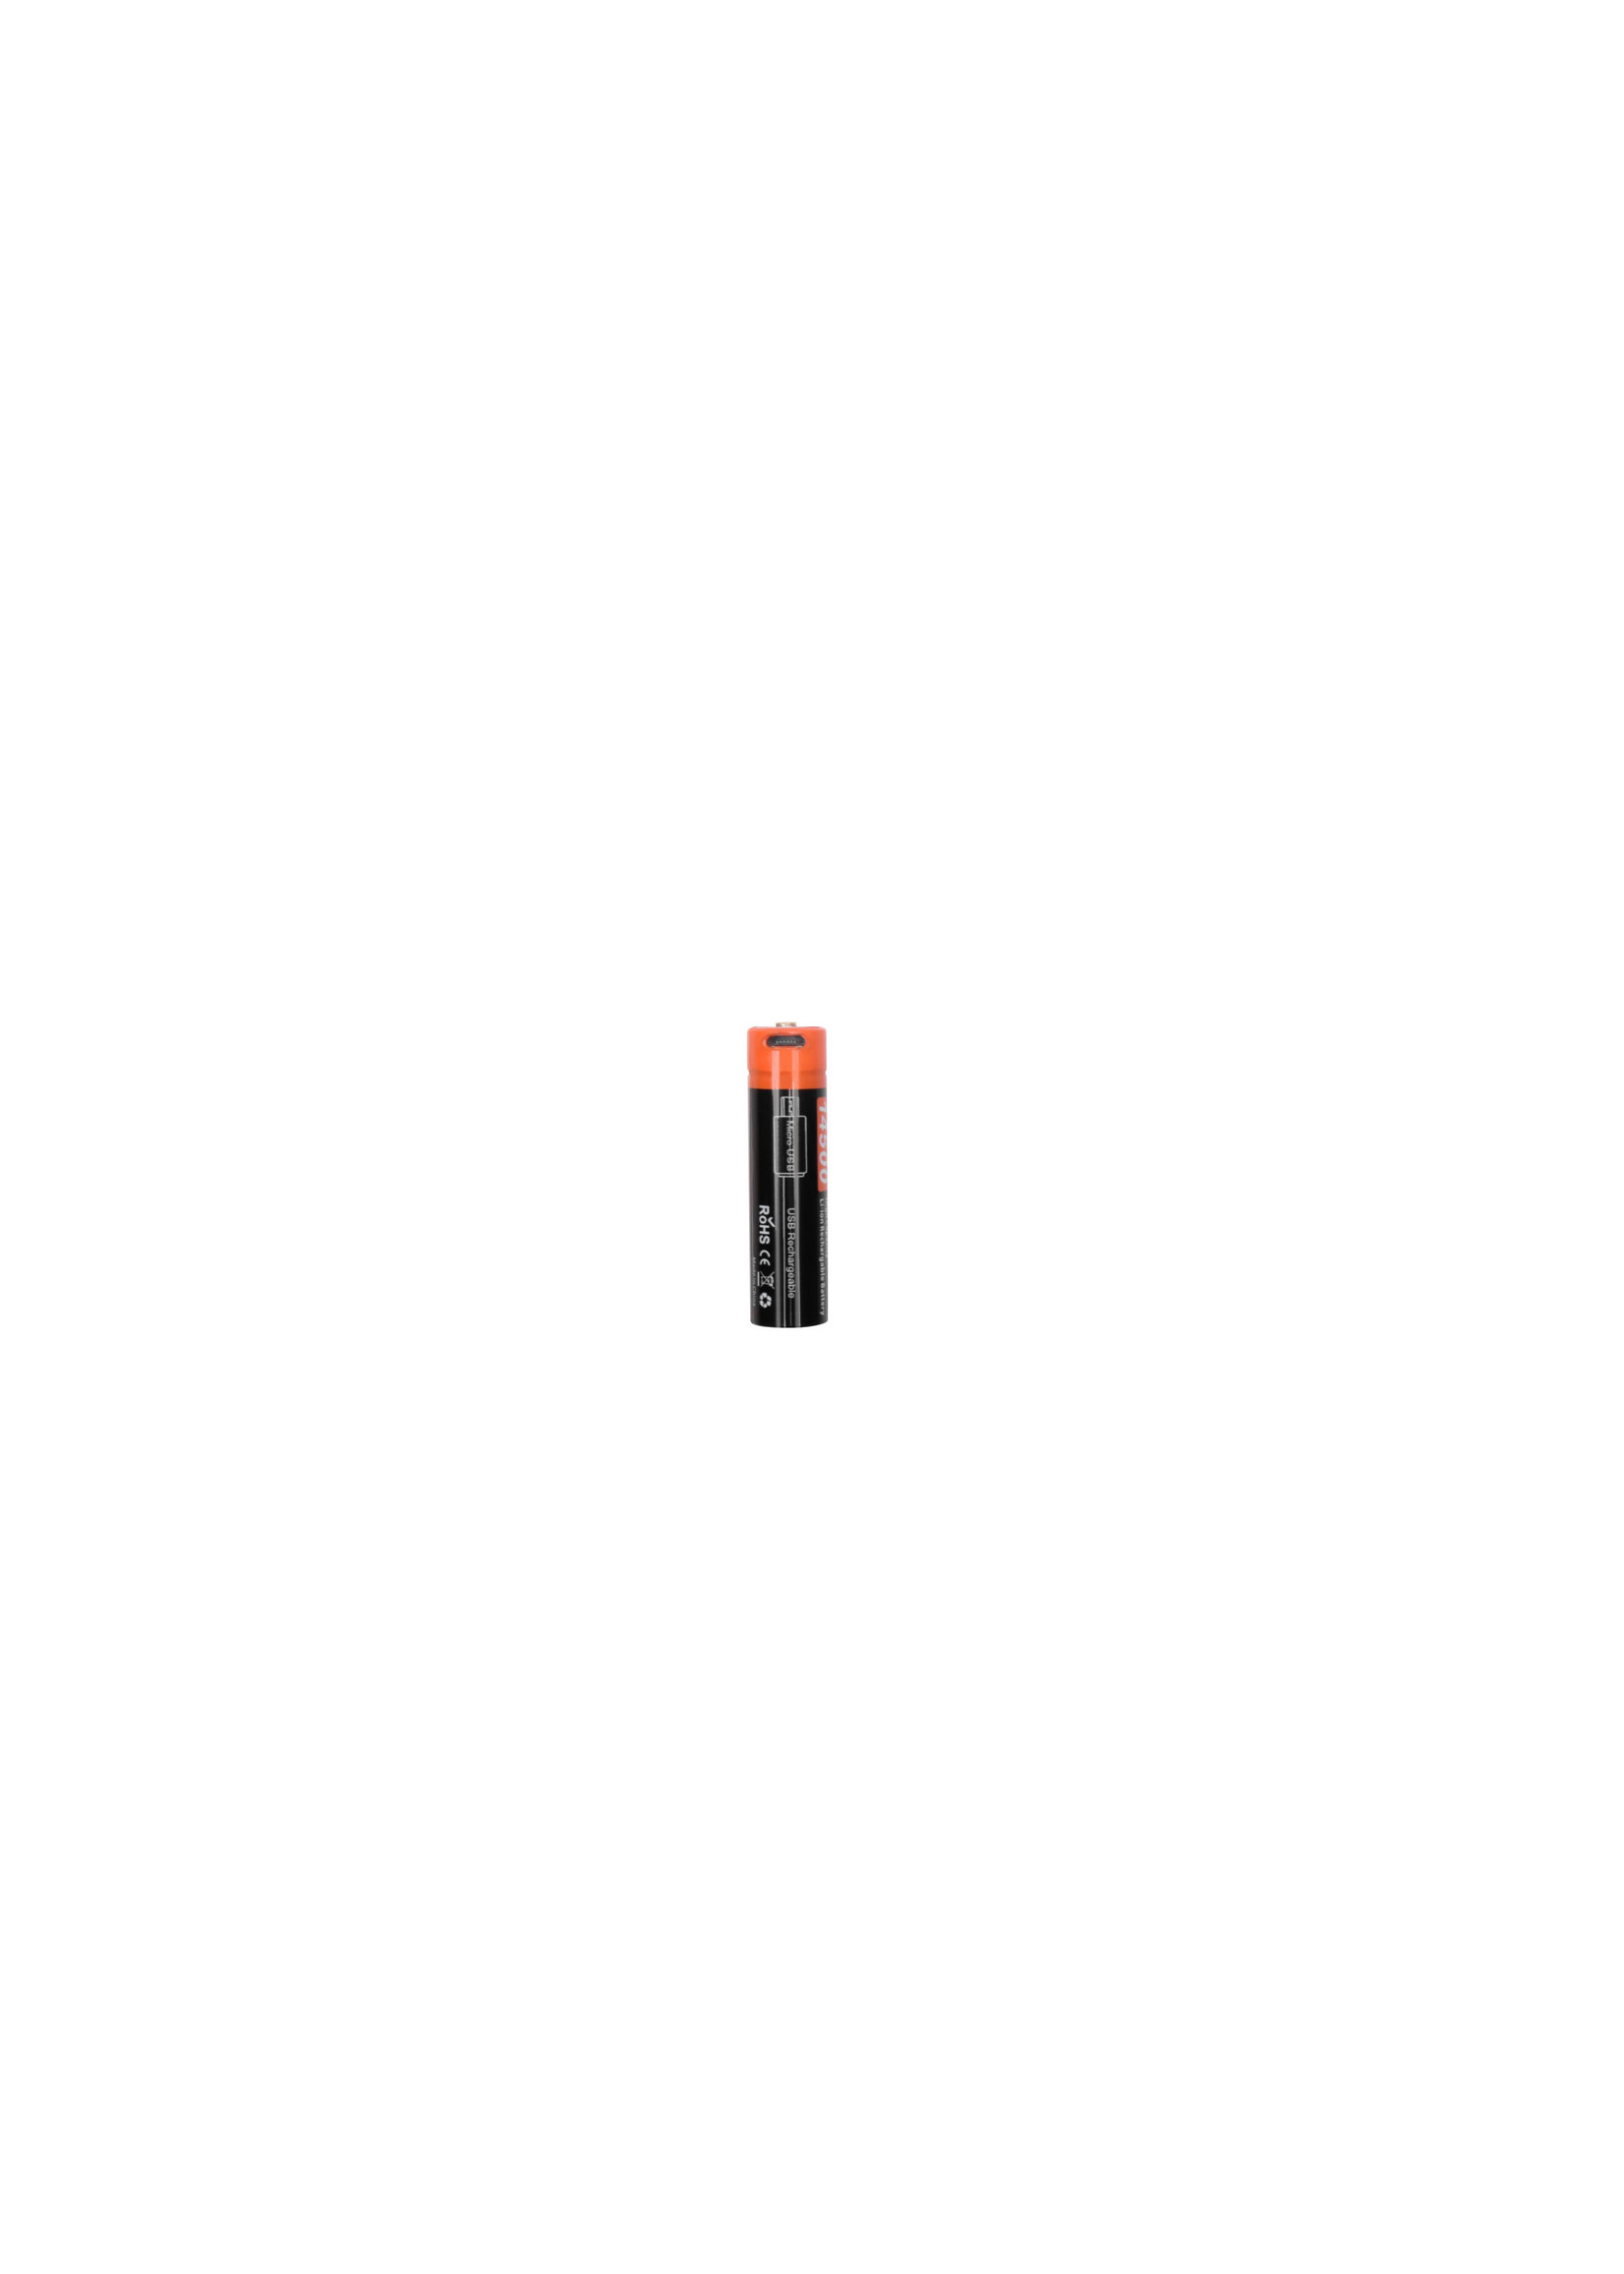 OrcaTorch OrcaTorch 14500 USB-Rechargeable Battery